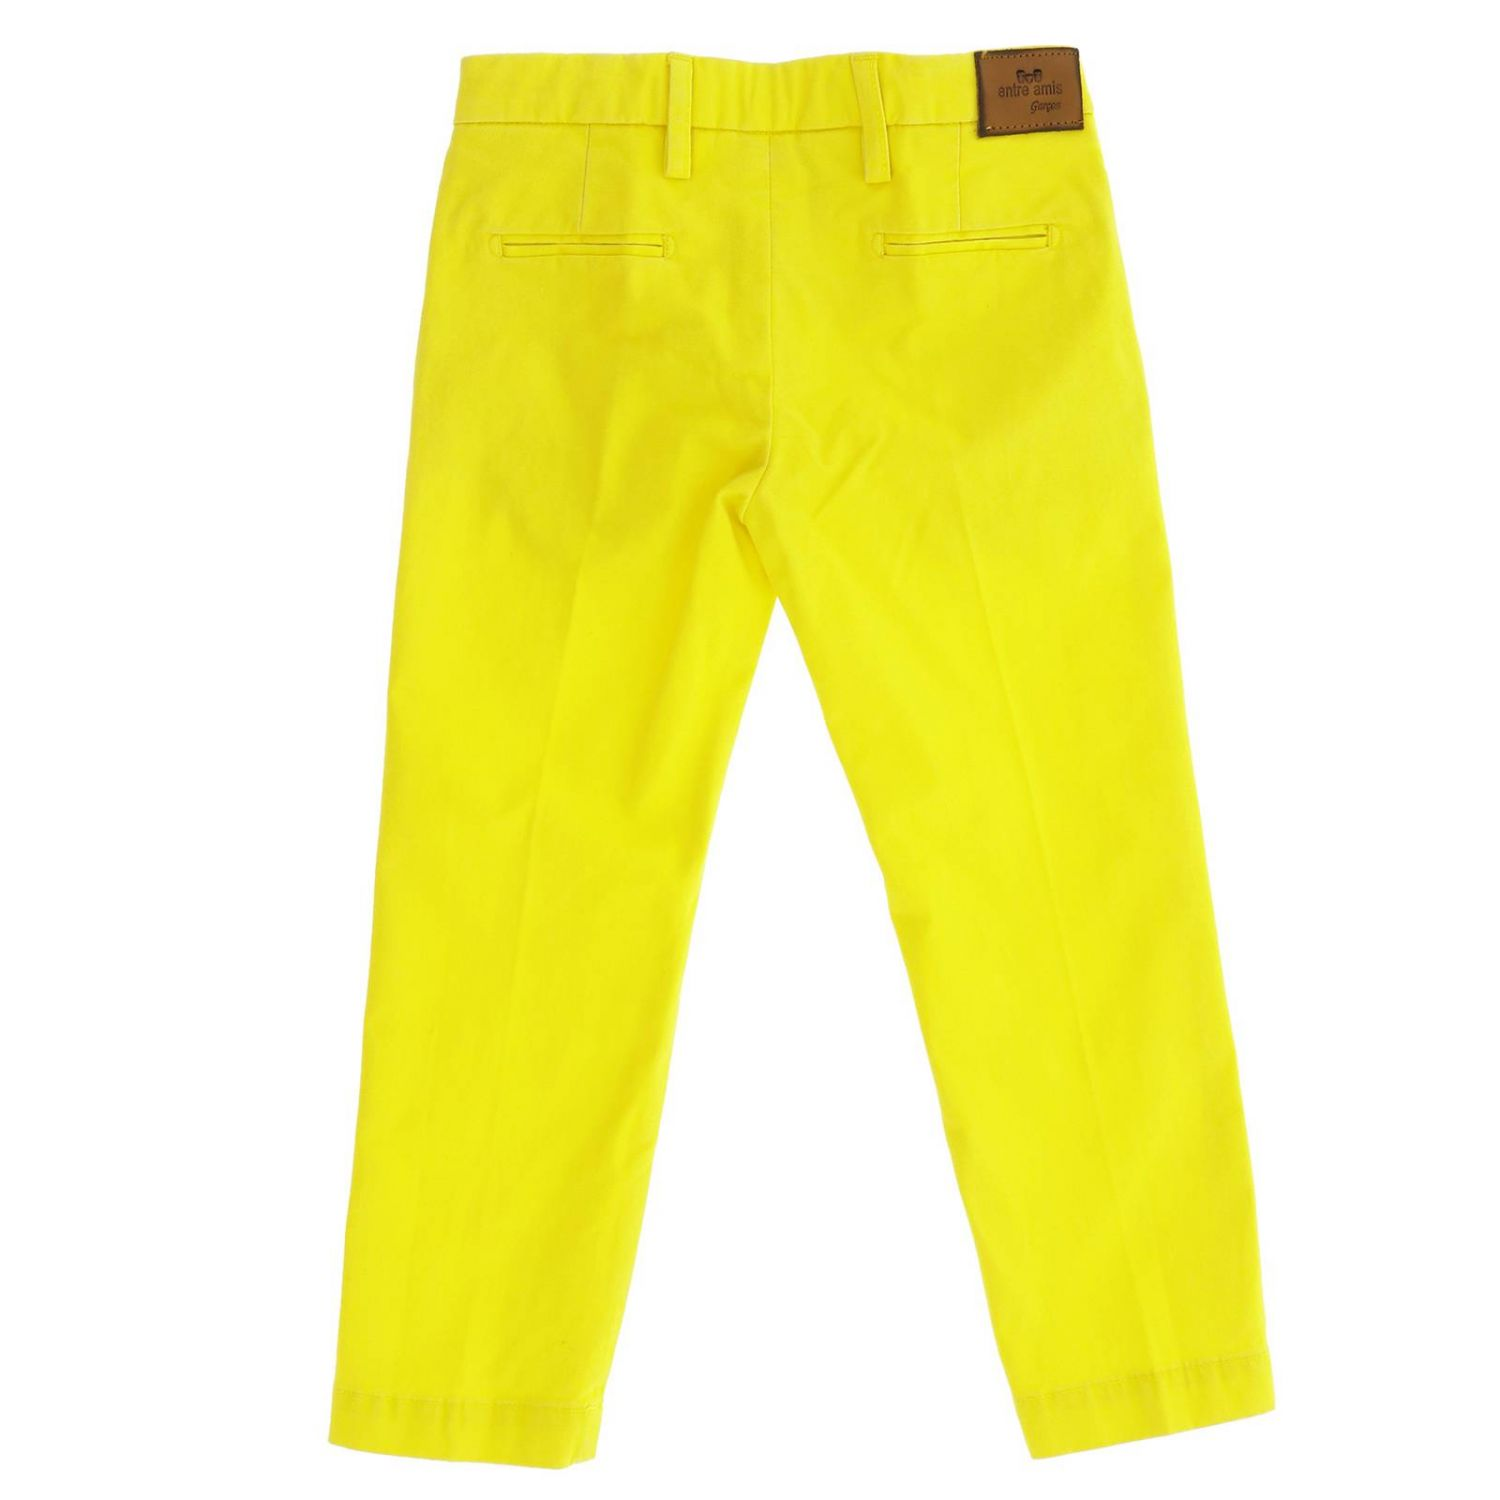 Trousers kids Entre Amis yellow 2